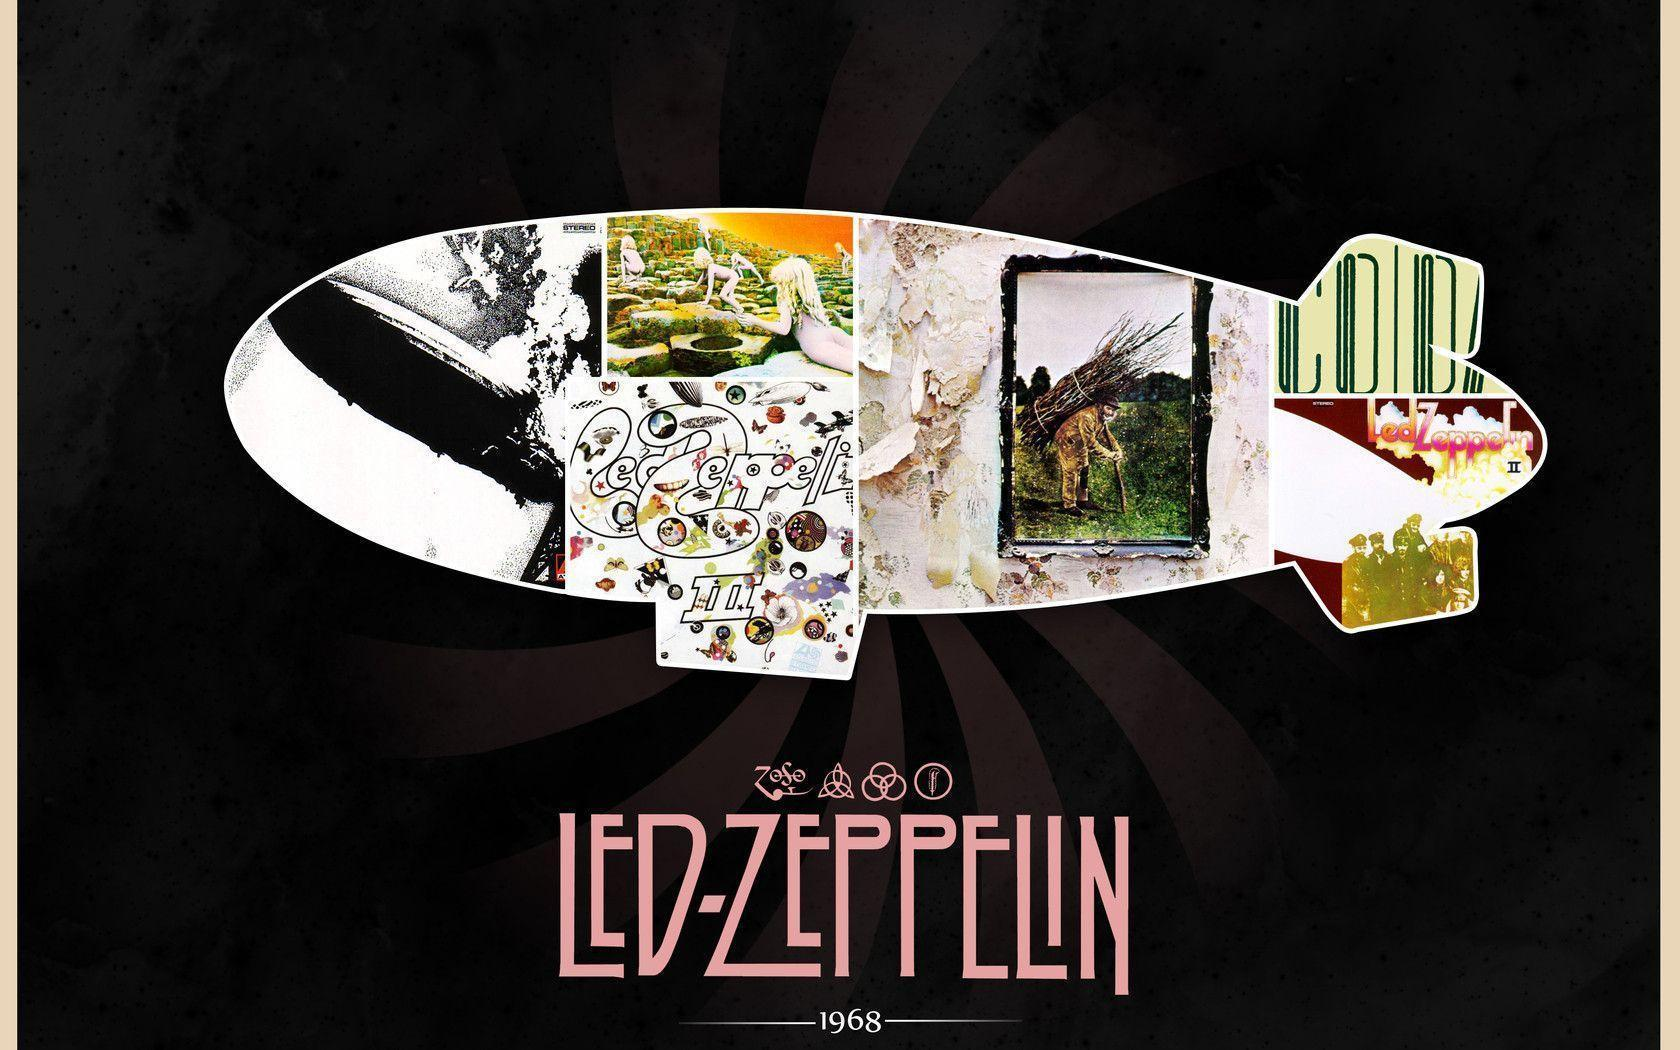 Led Zeppelin Wallpapers, Backgrounds